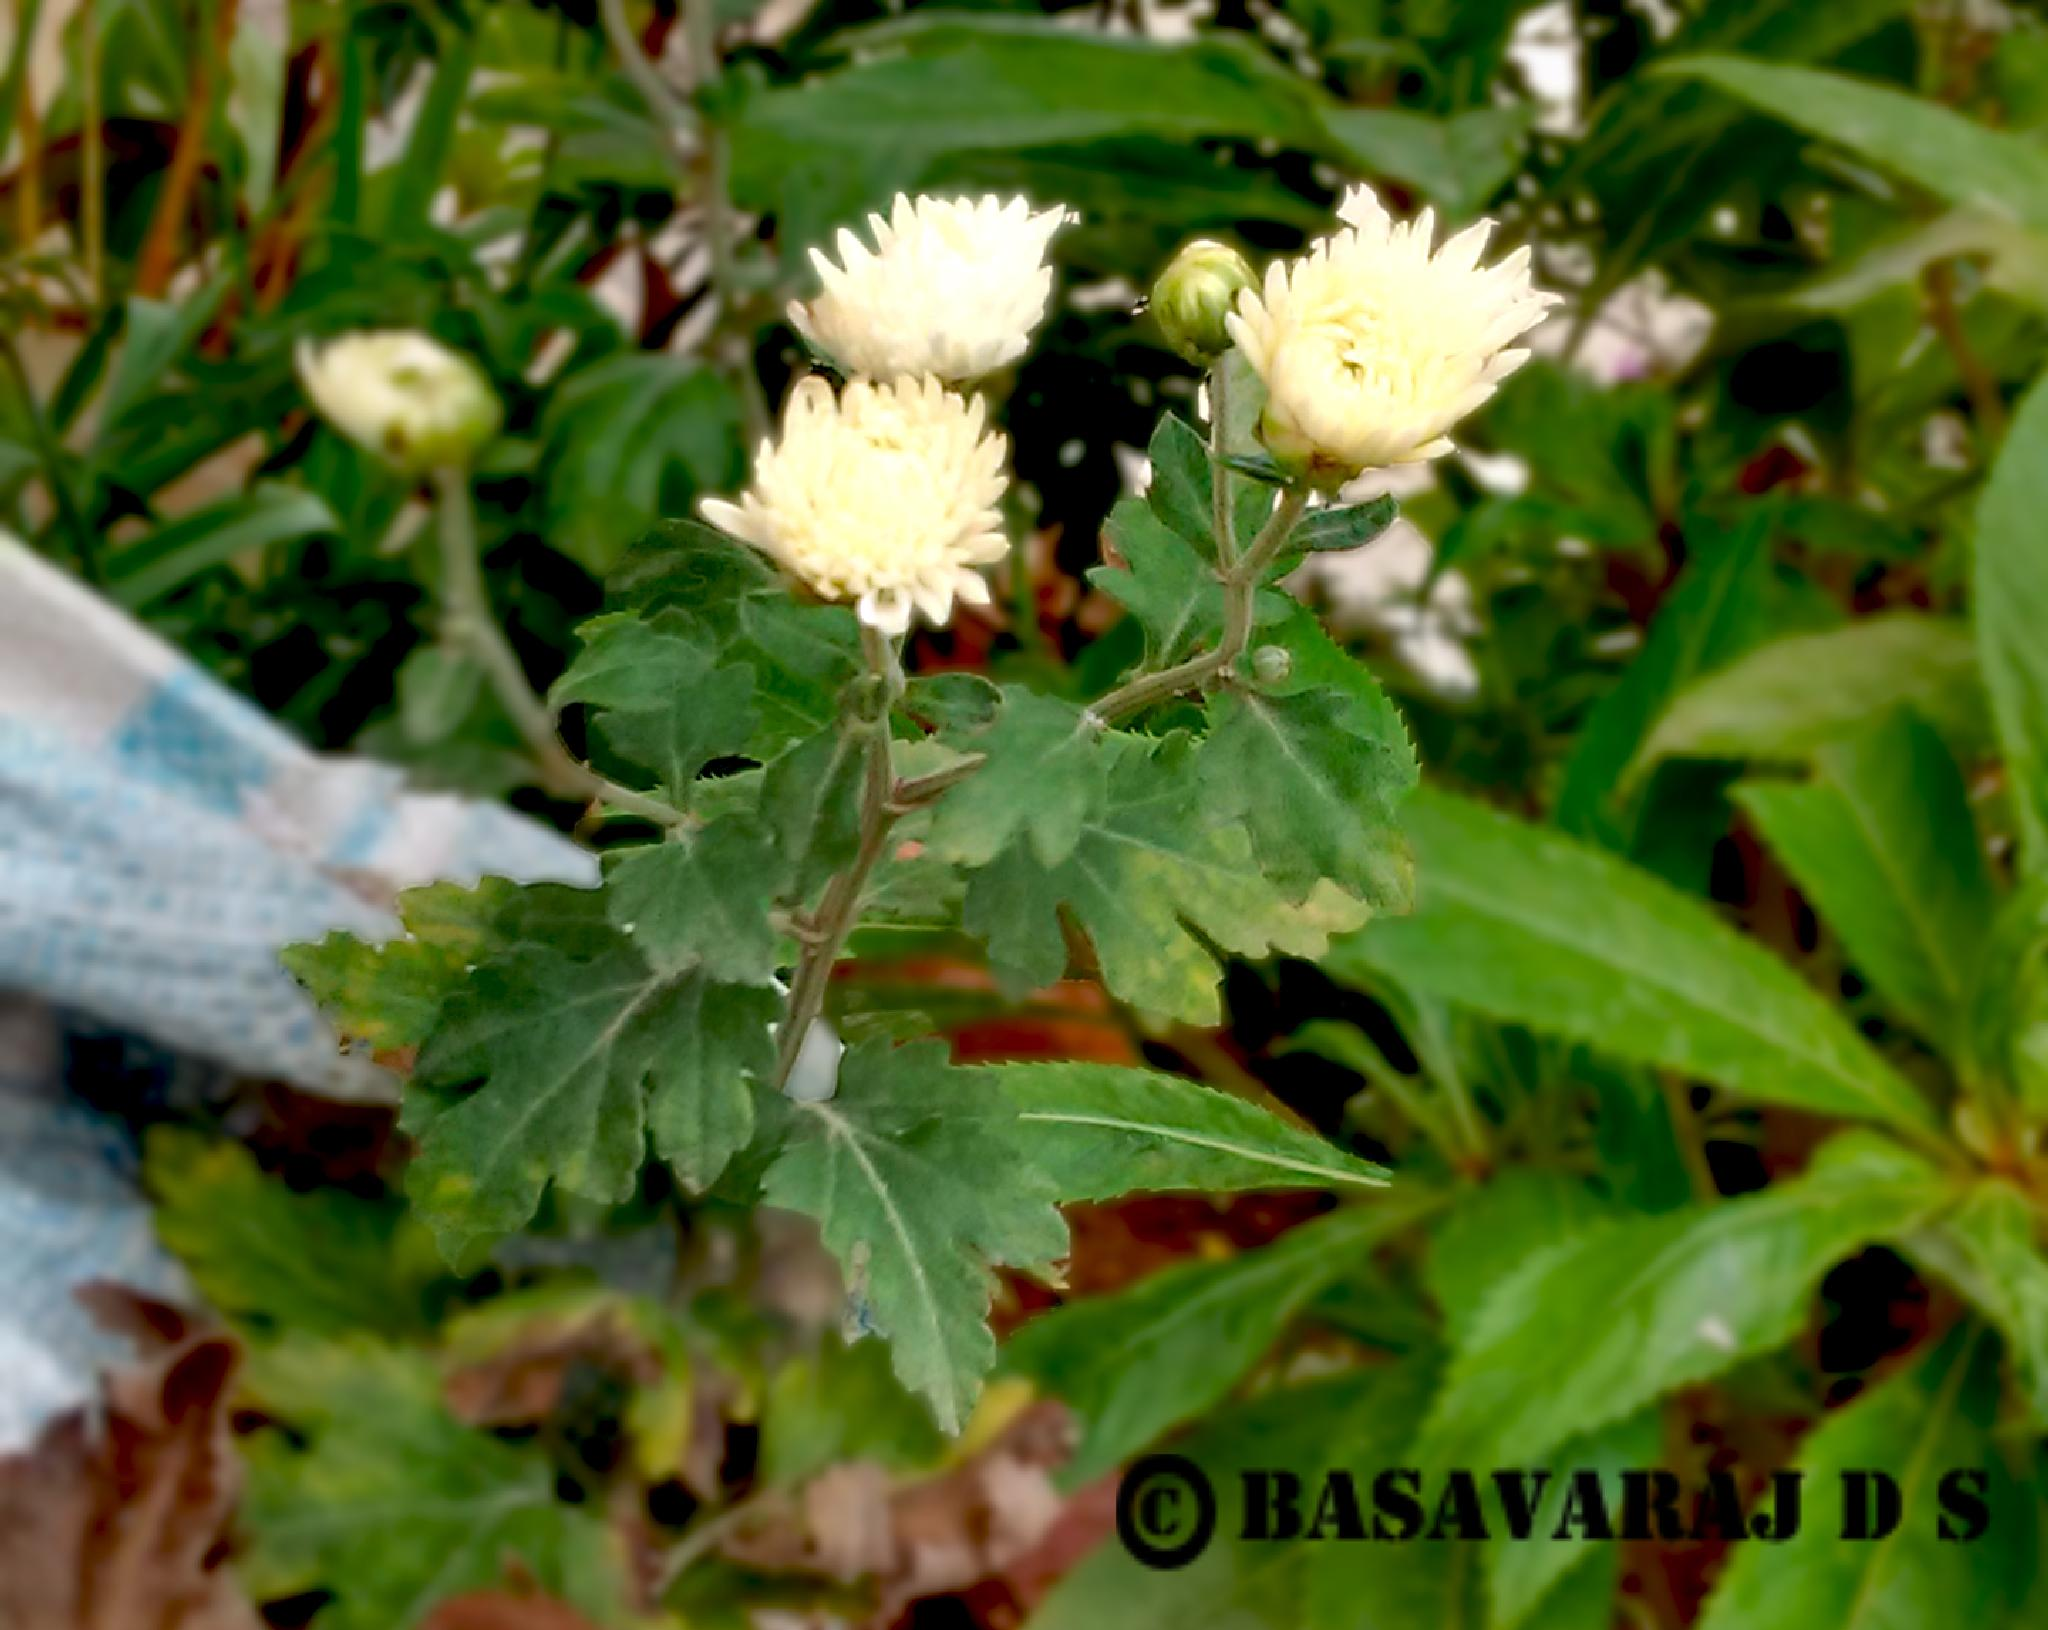 Lovely flower by Basavaraj D.S